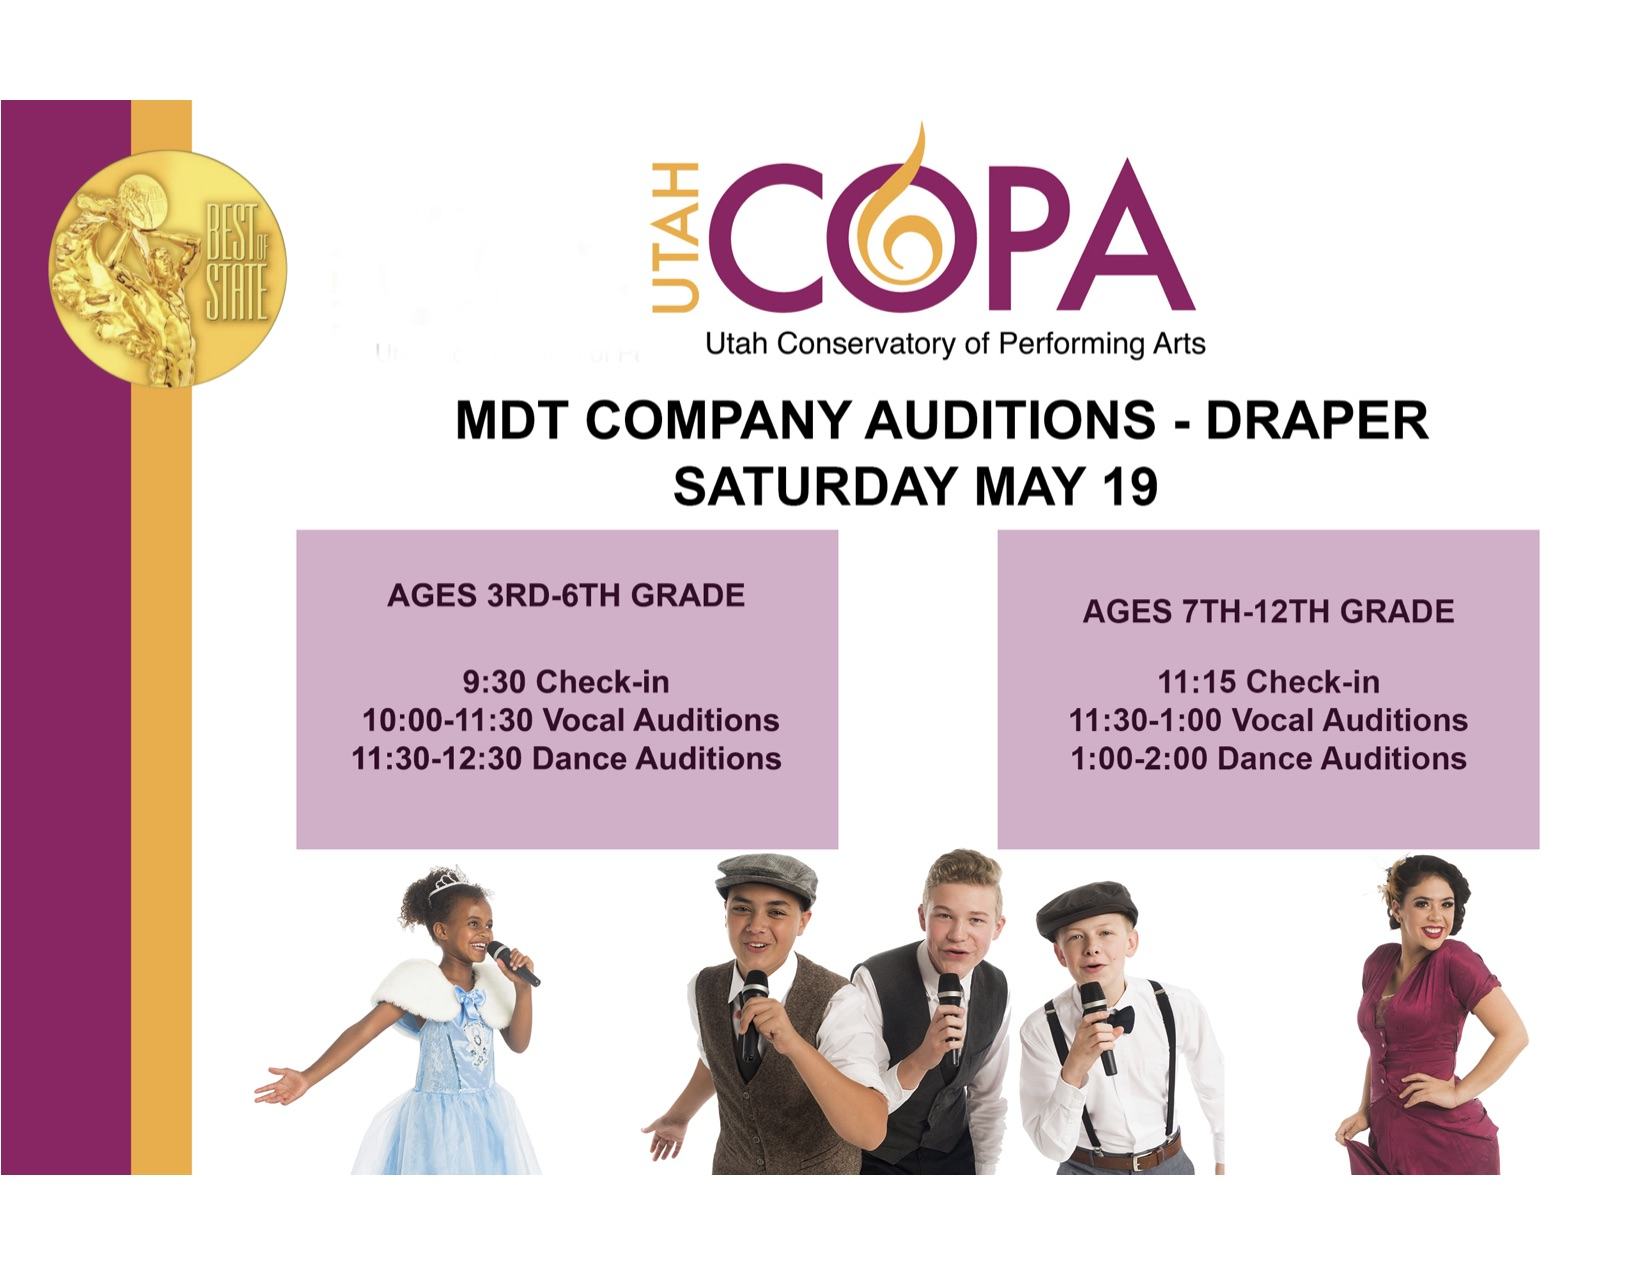 Final draper mdt audition flyer bothsides